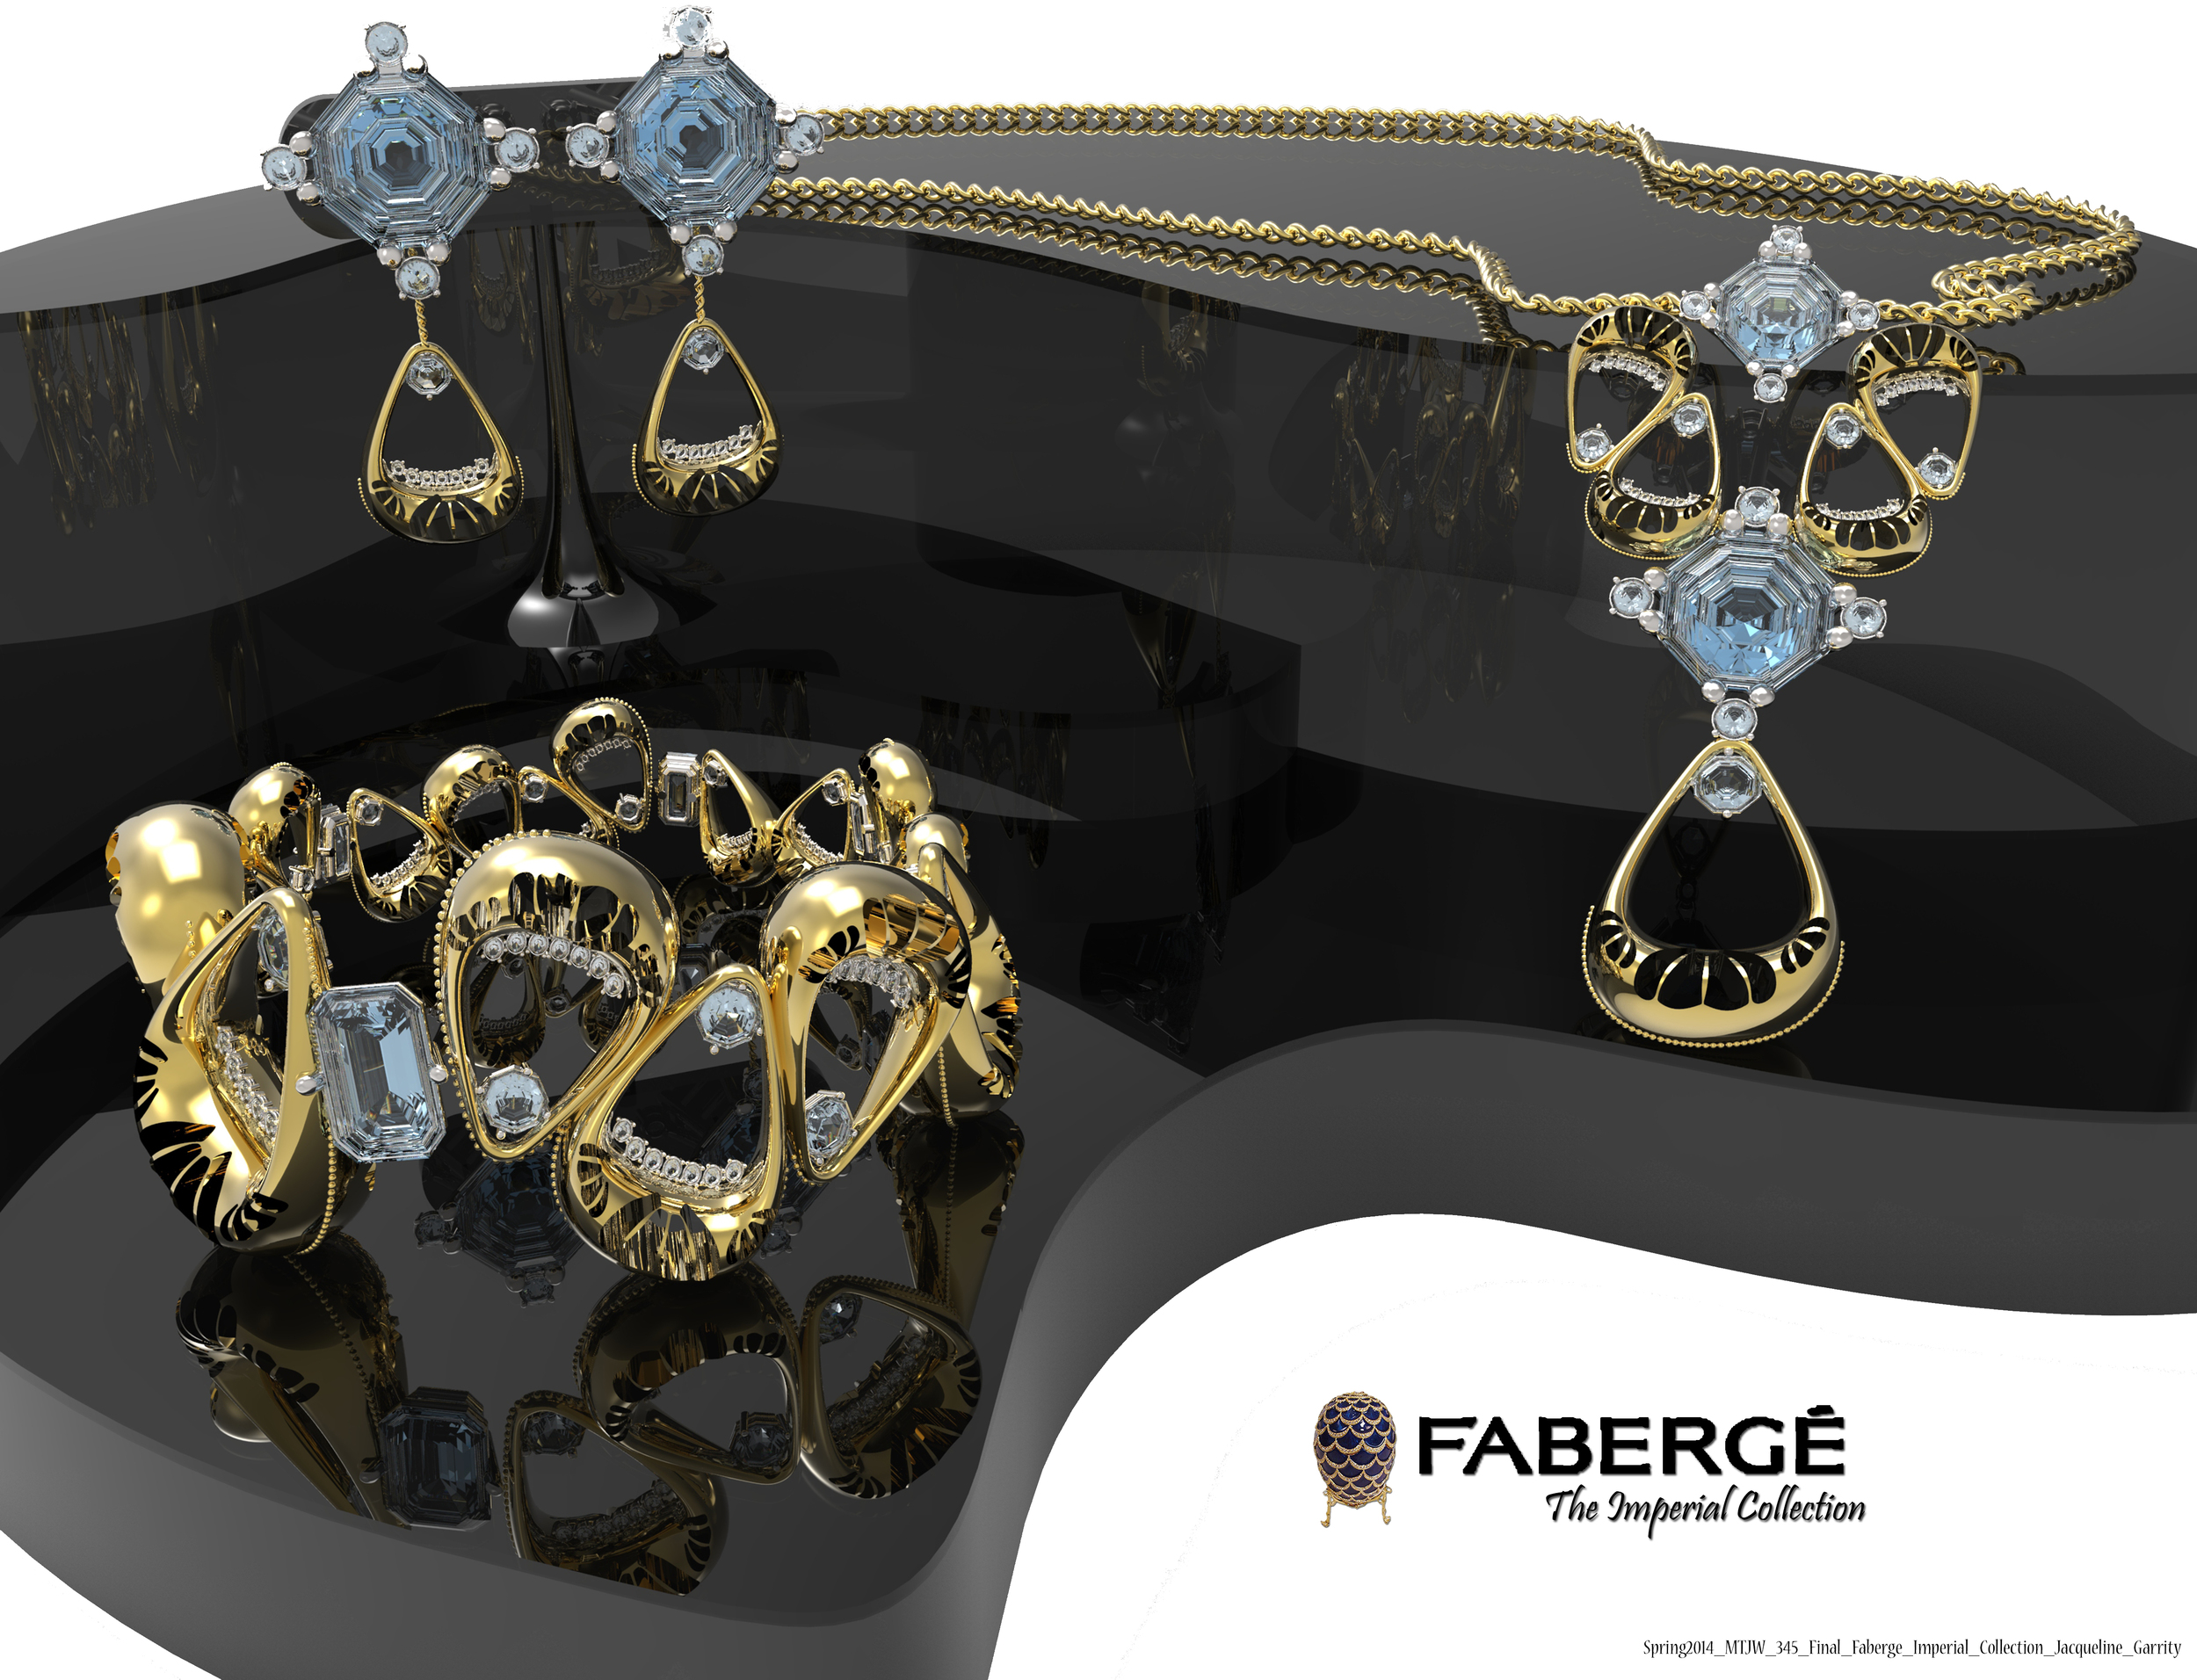 Spring2014_MTJW_345_Final_Faberge_Imperial_Collection_Jacqueline_Garrity.jpg